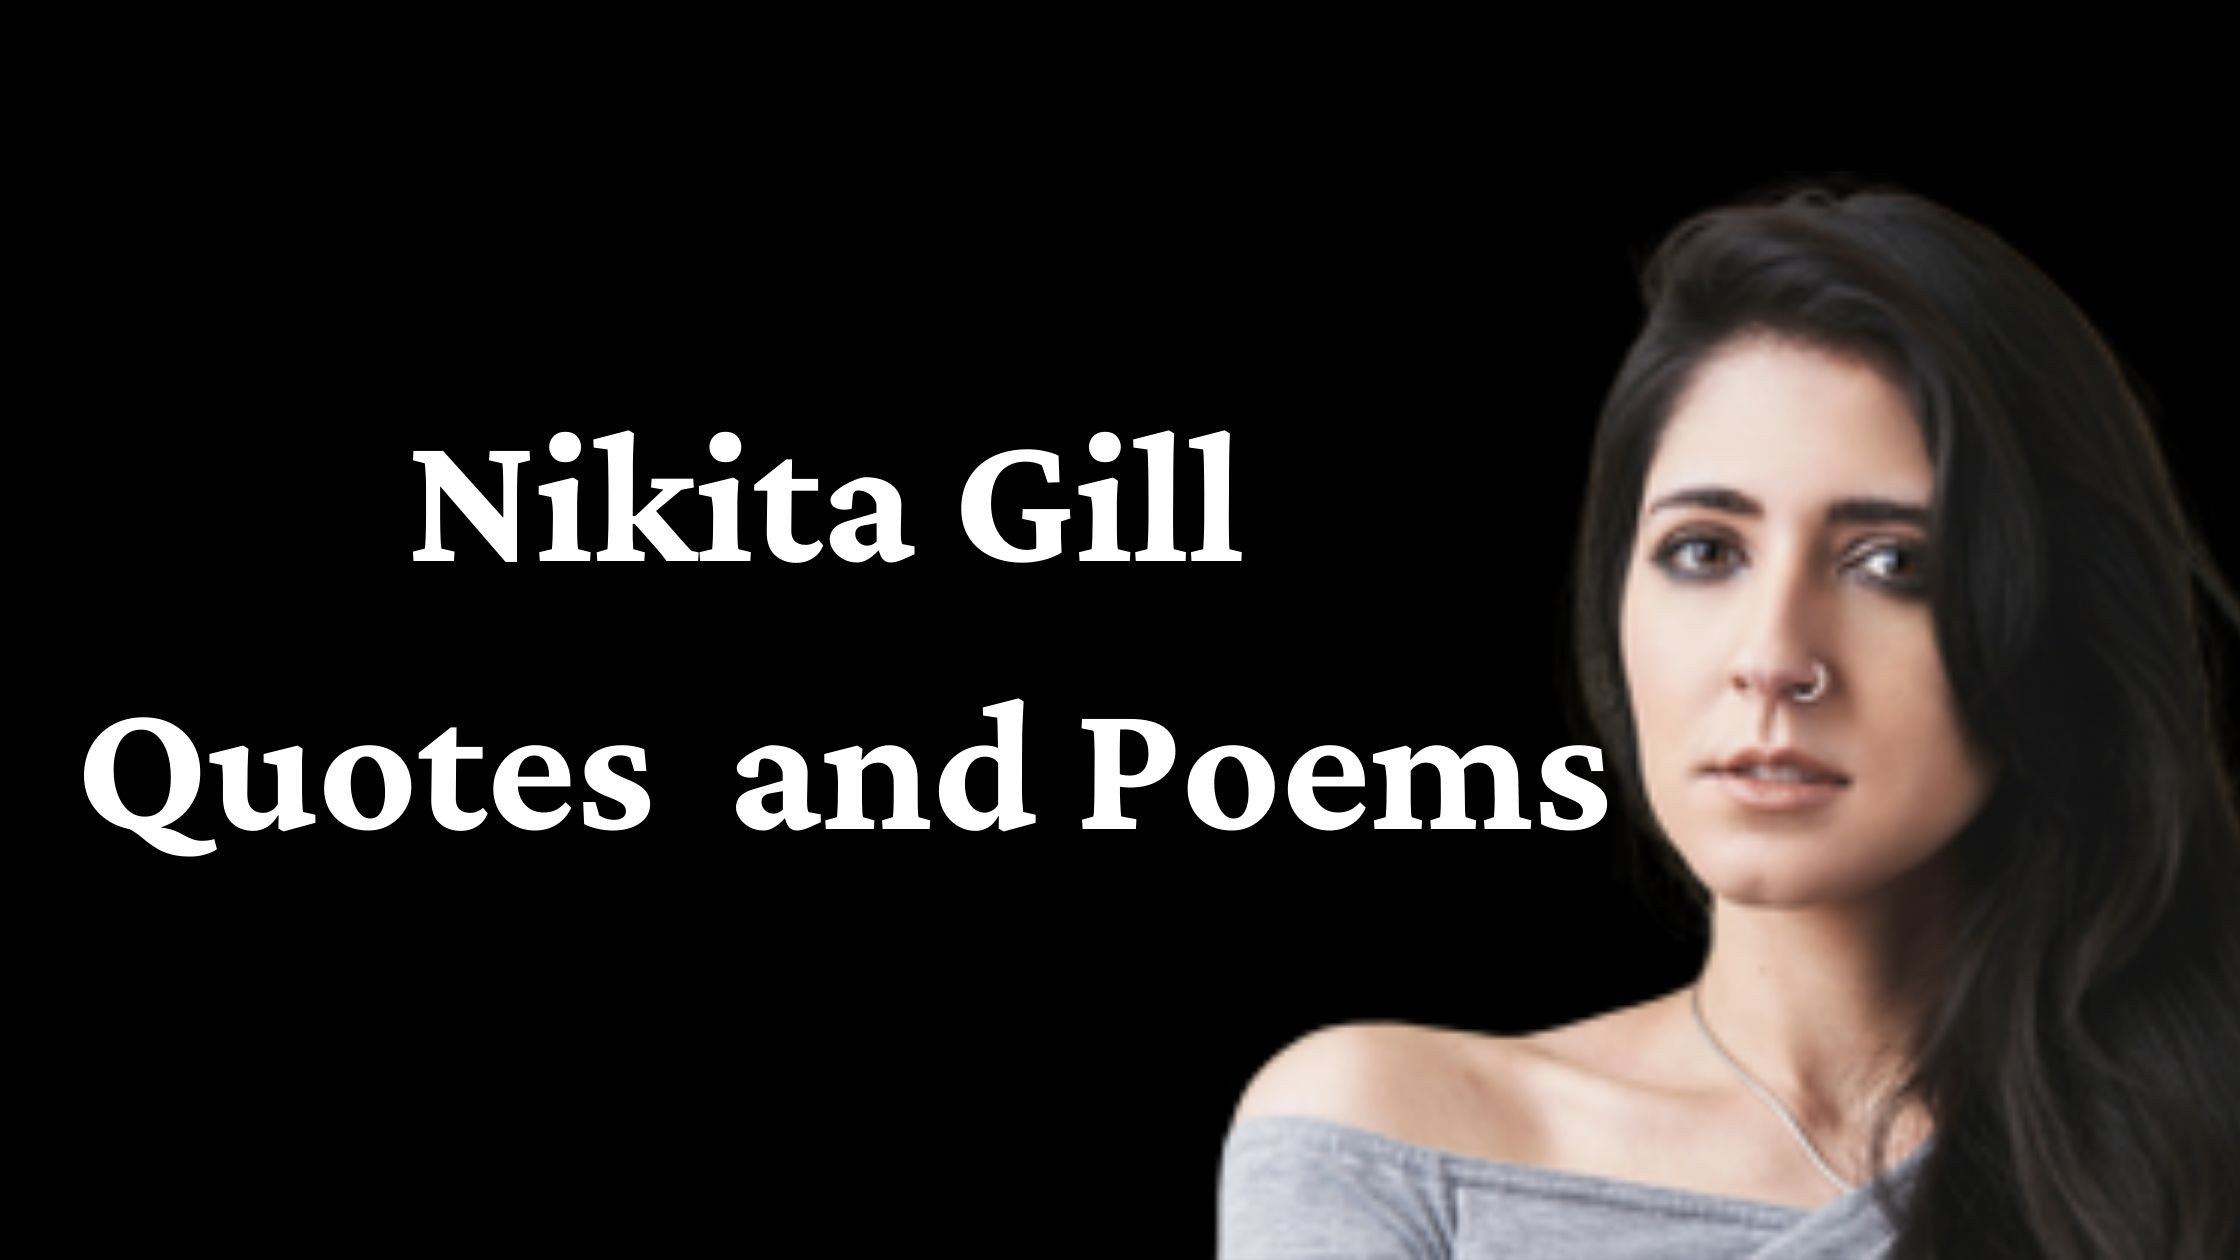 Nikita Gill Quotes About Love and Life